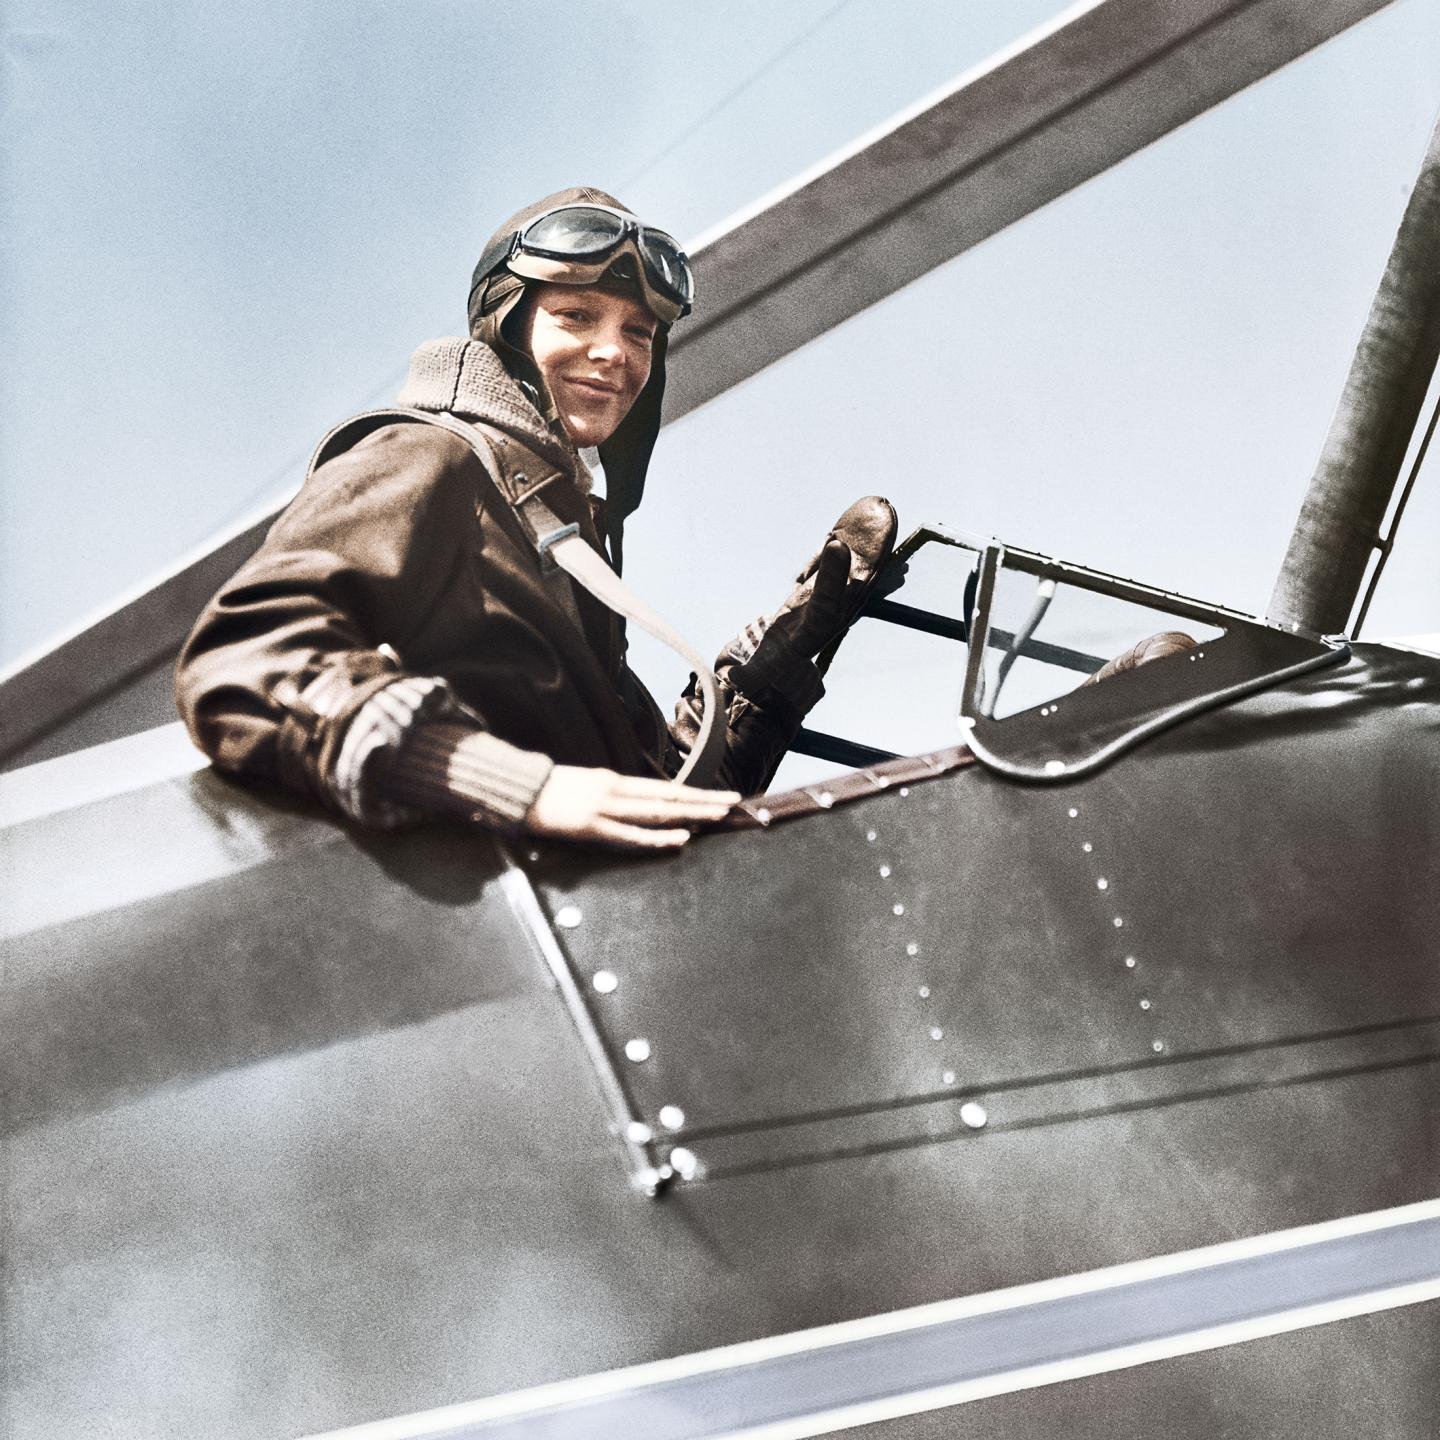 In 1932, Amelia Earhart performed the first female solo flight over the Atlantic, using her Longines chronograph as a navigation instrument.